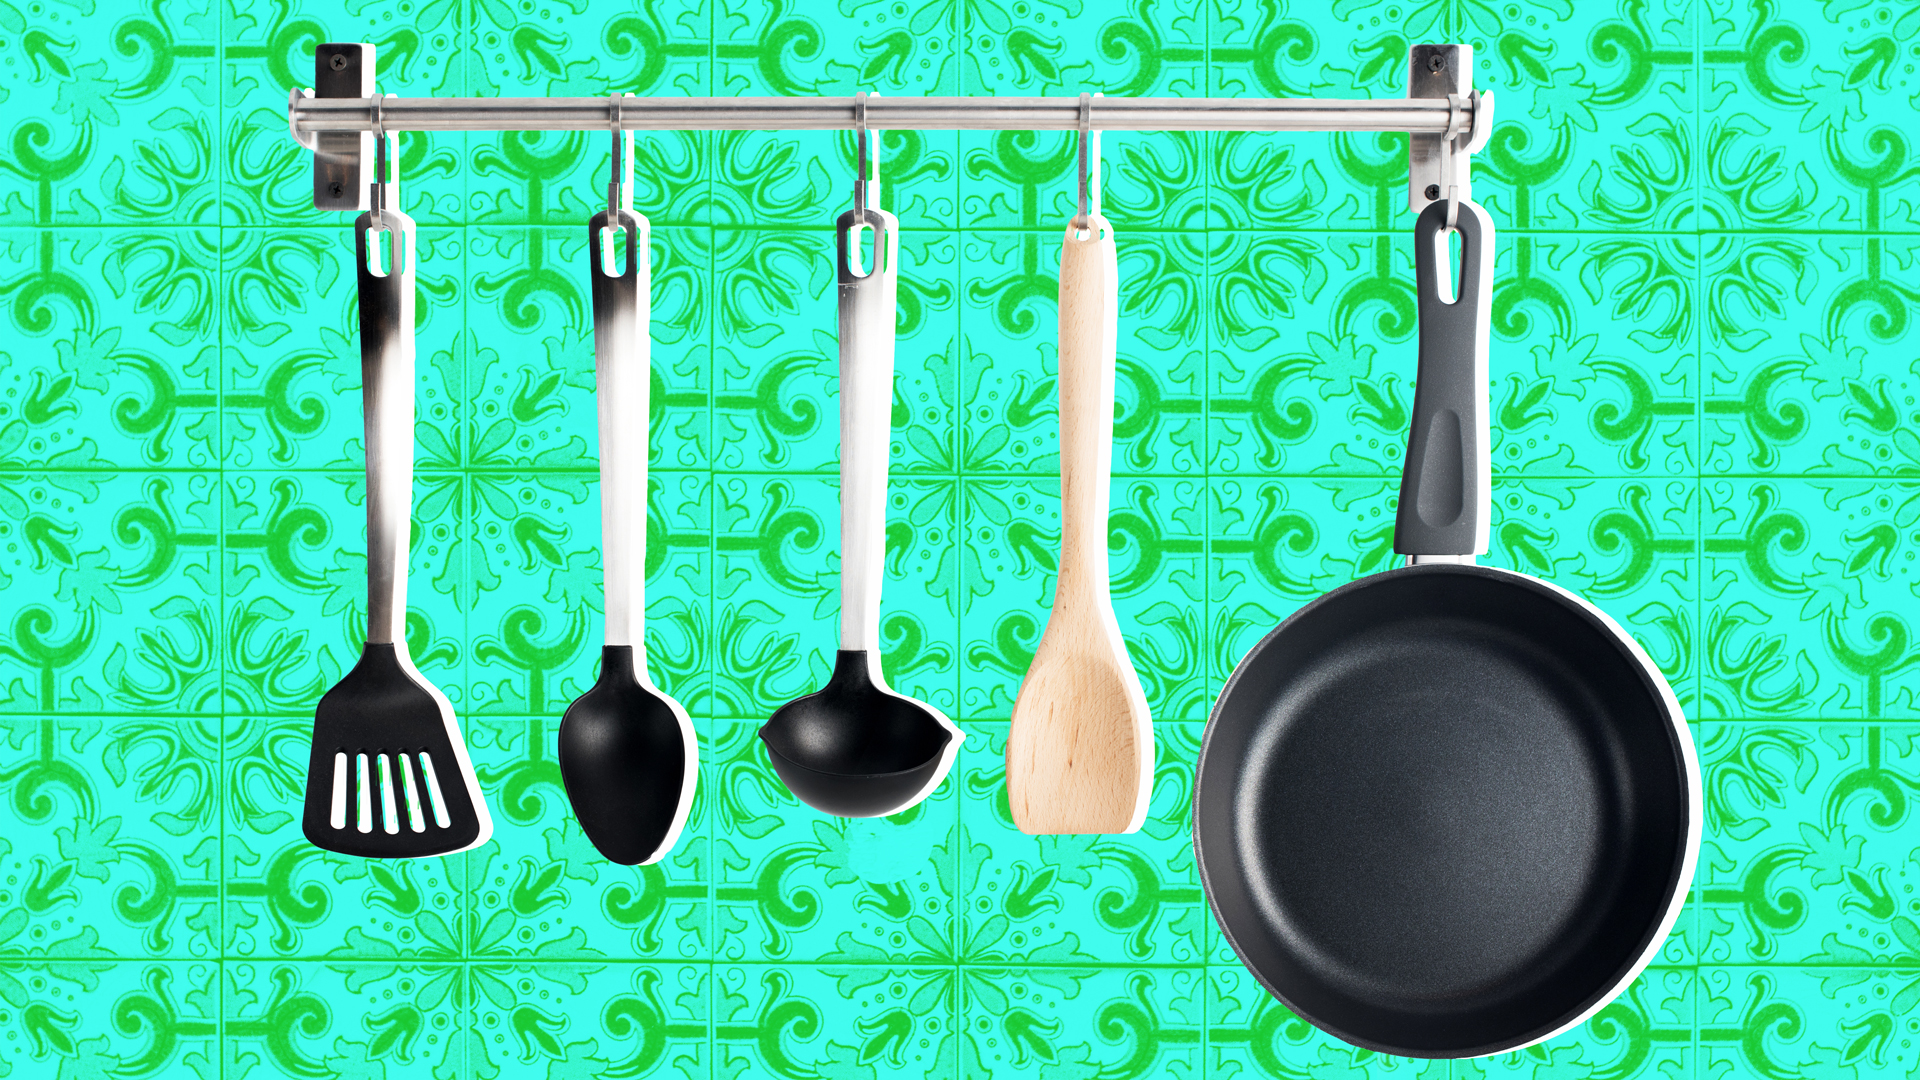 The Top 10 Kitchen Tools Every Home Cook Needs Sheknows